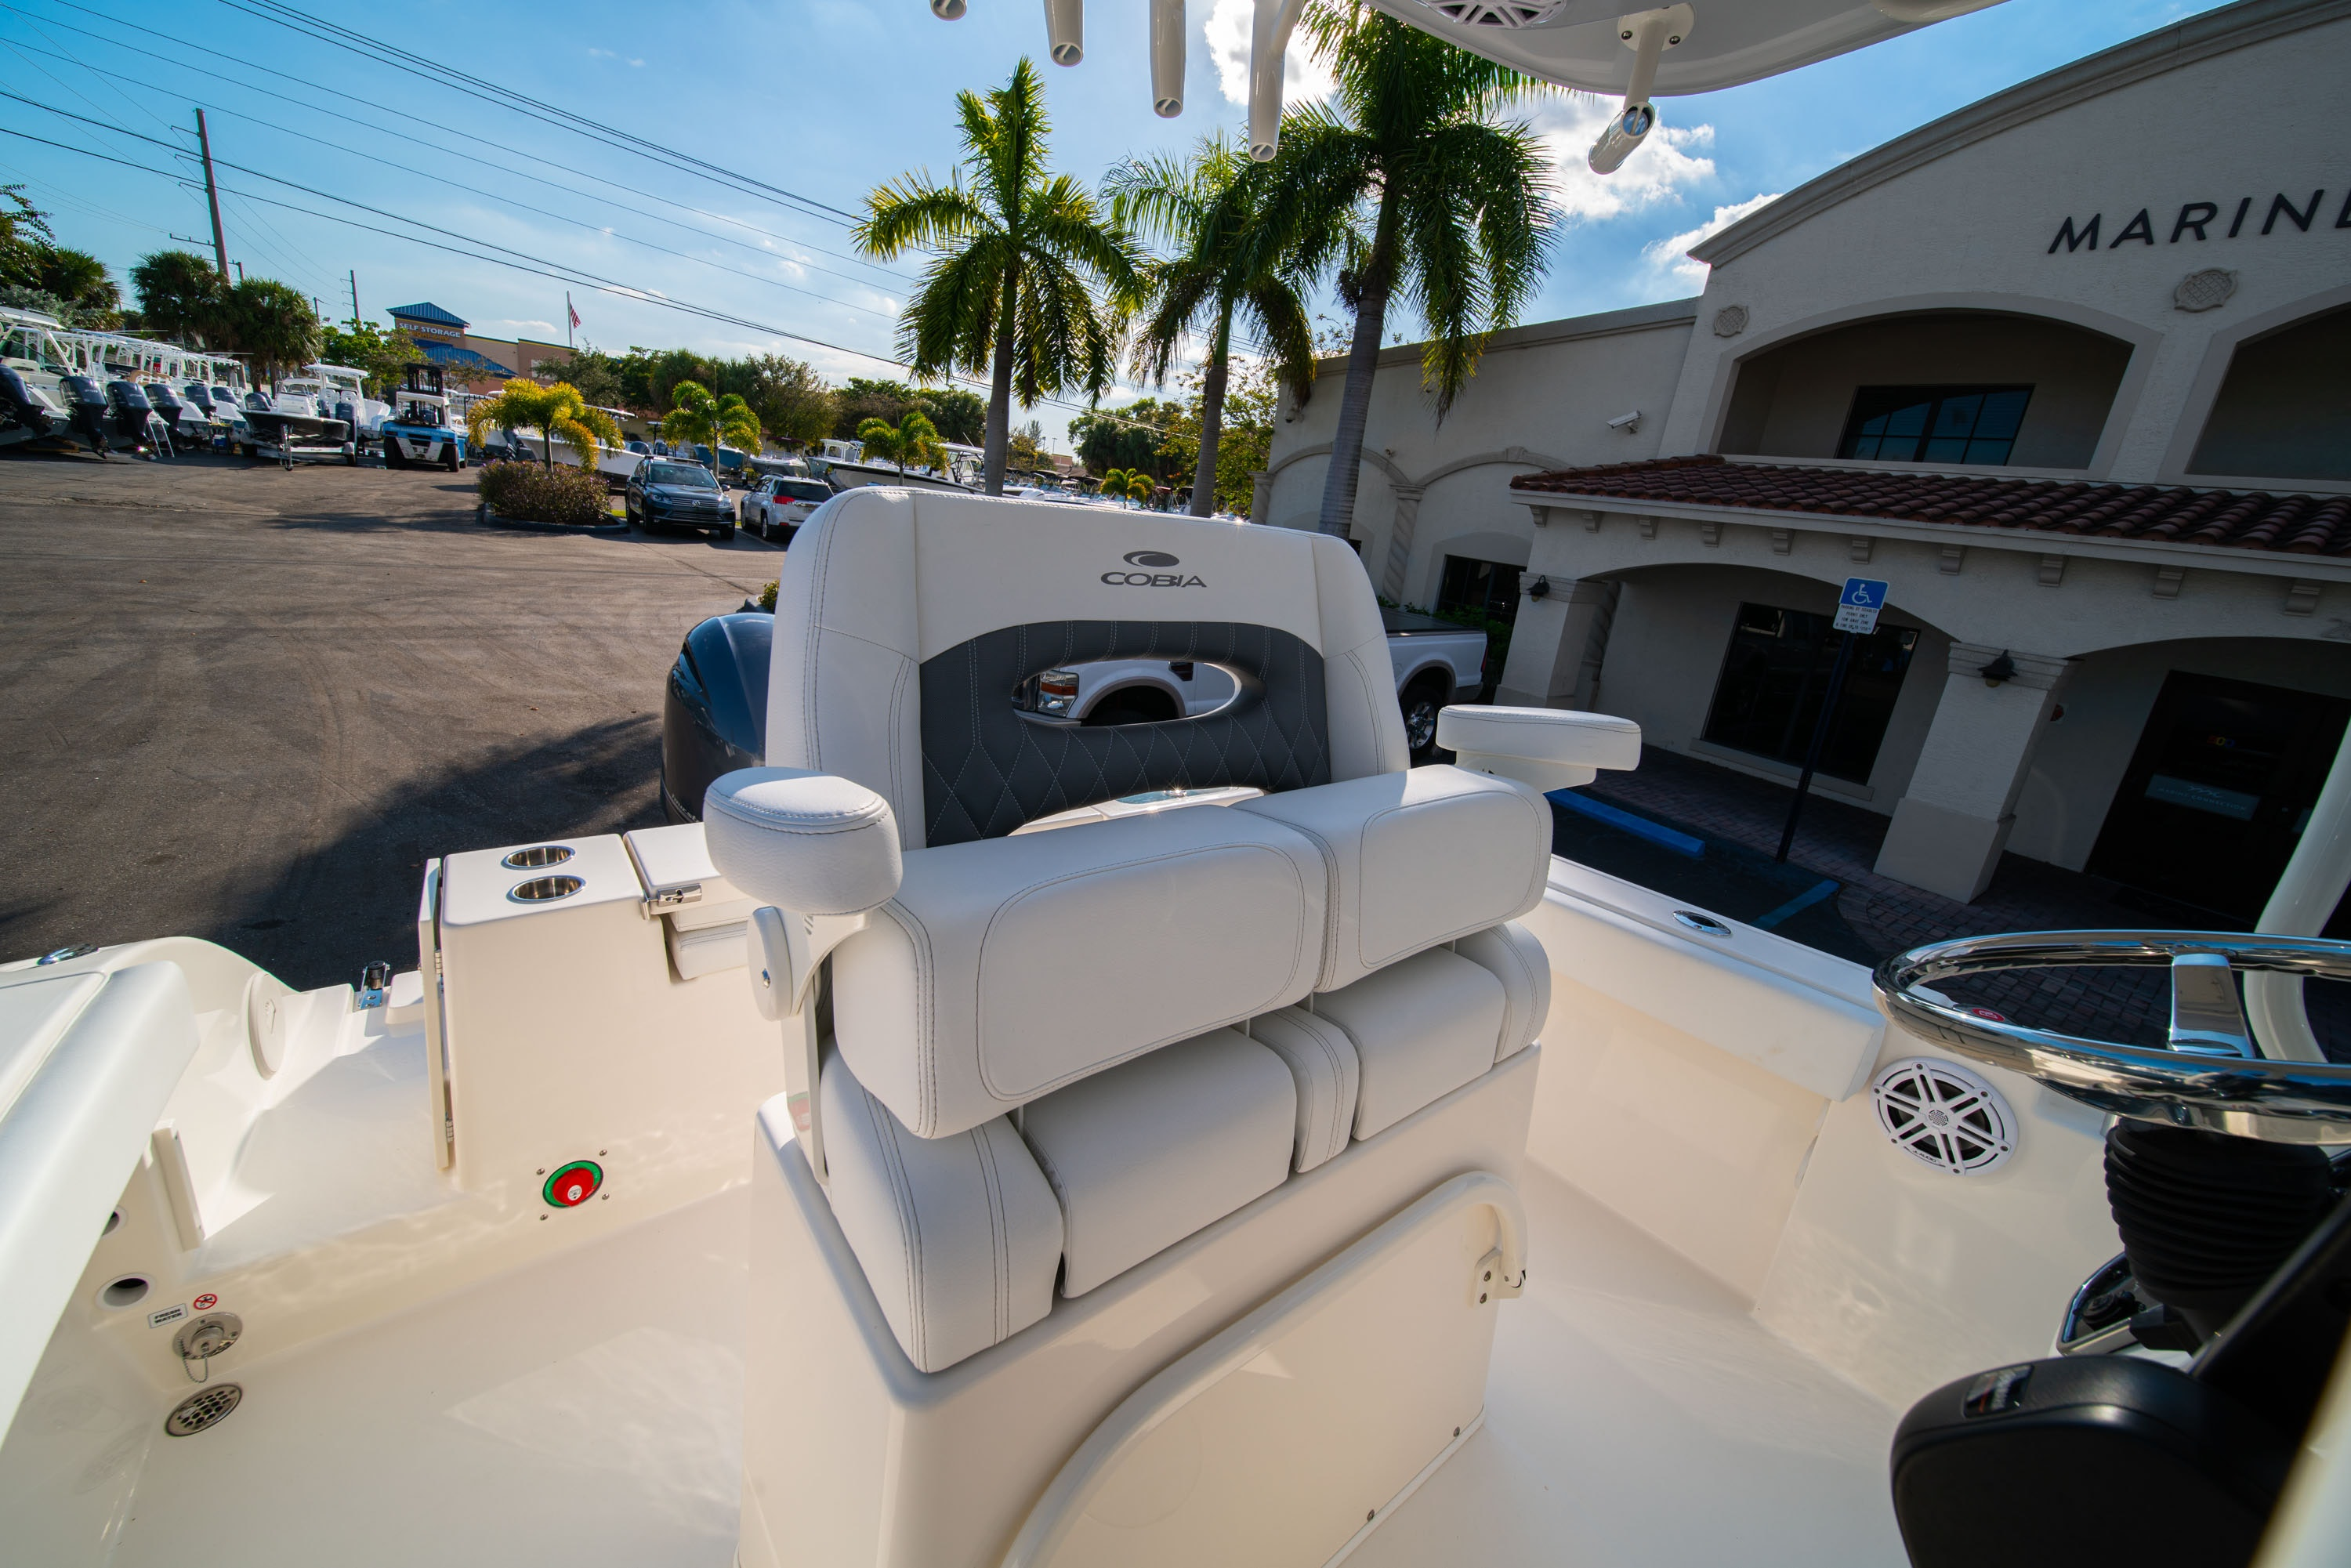 Thumbnail 26 for New 2020 Cobia 220 CC boat for sale in West Palm Beach, FL